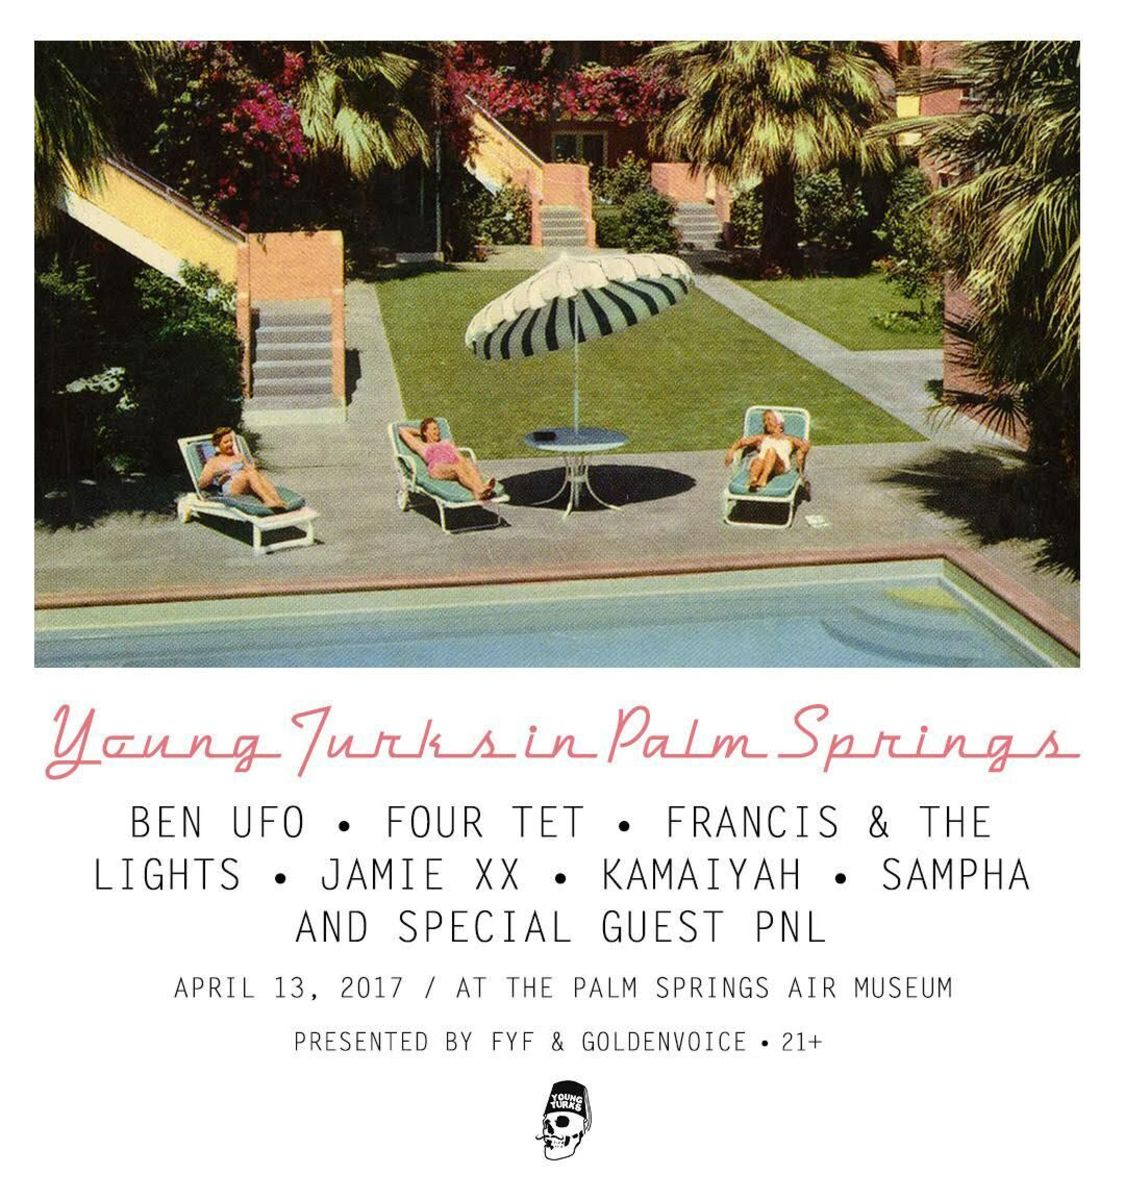 Young Turks In Palm Springs - Oh yes, we are all in!